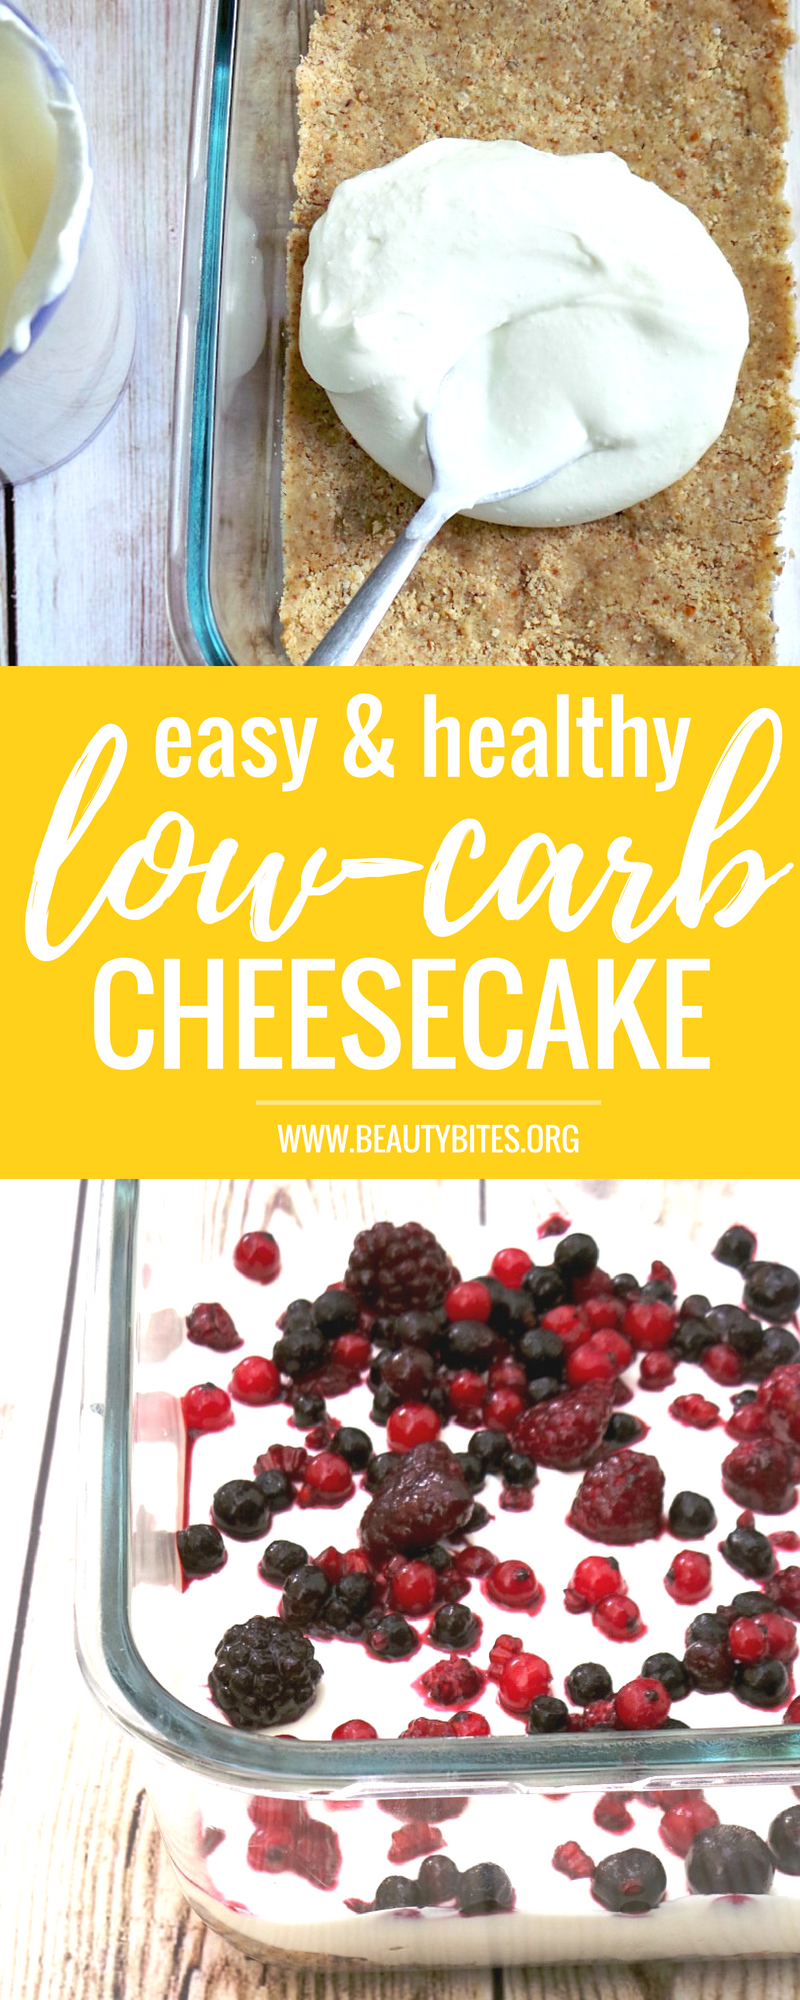 Easy low-carb cheesecake that is no bake, gluten-free and high-protein! This is a light delicious low-carb dessert recipe that won't skyrocket your blood sugar (I made this for my sister when she was pregnant & had gestational diabetes). Try it! | www.beautybites.org | Clean Eating Recipe